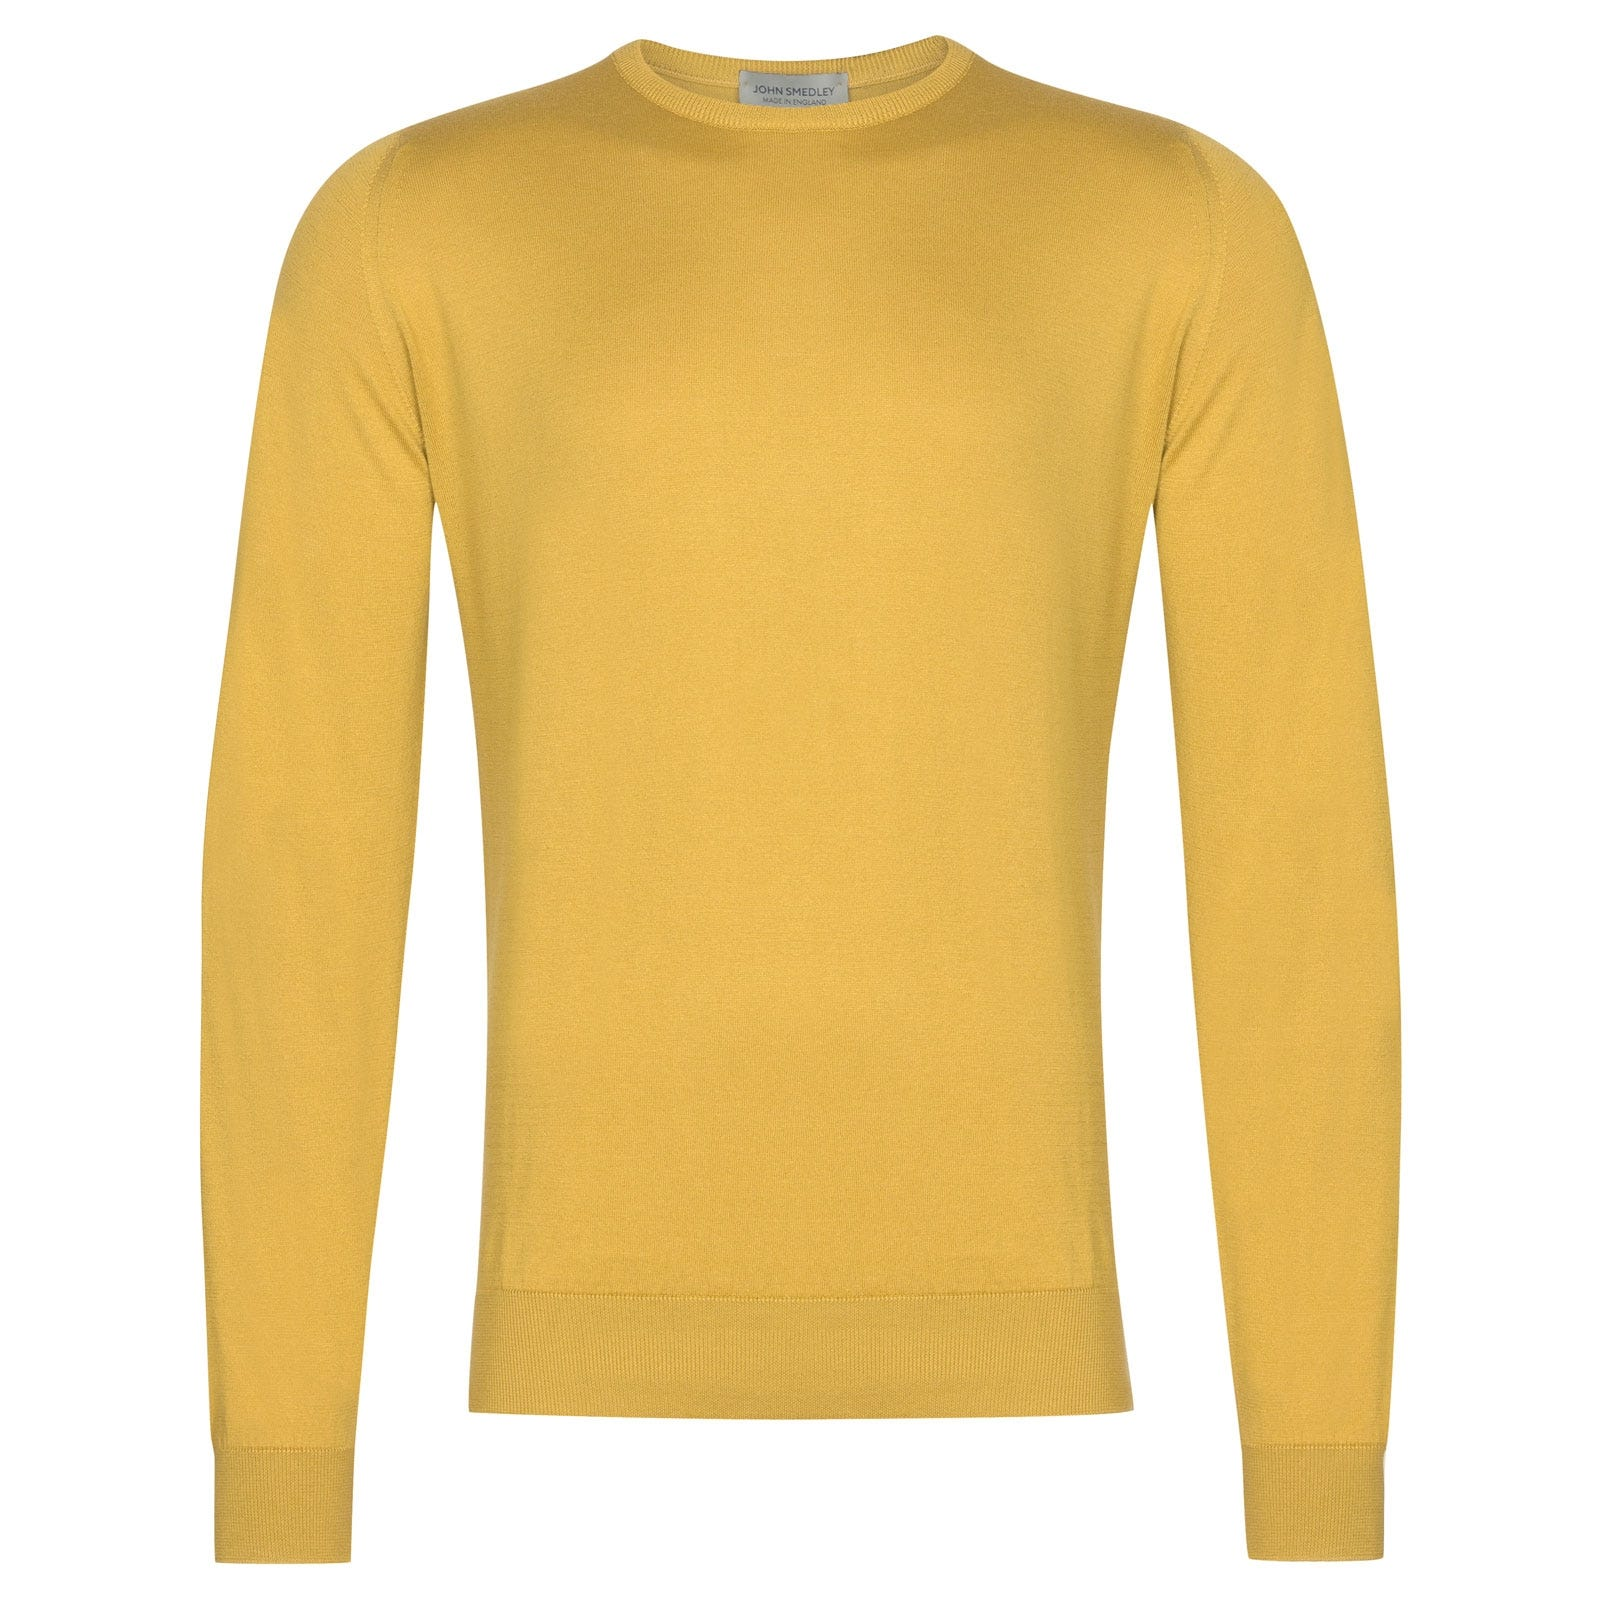 John Smedley Hatfield in Yellow Bloom Pullover-LGE